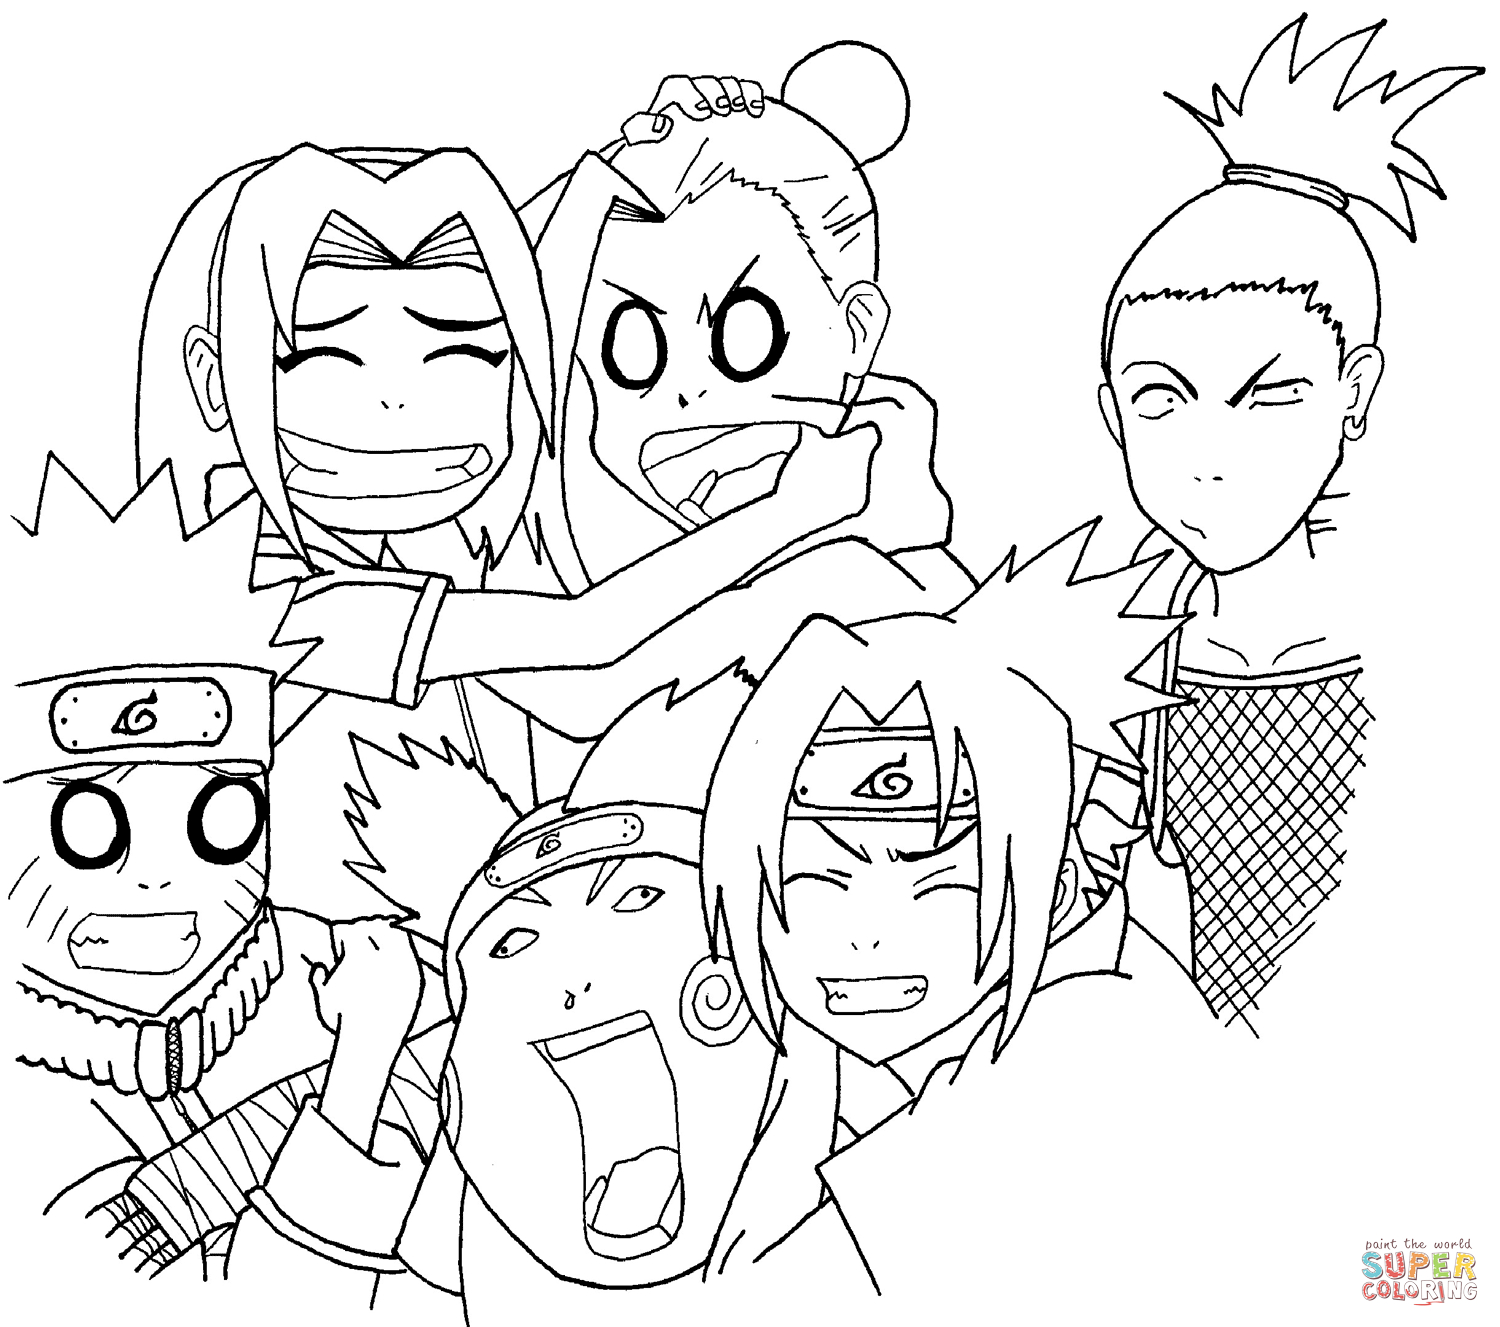 Anime Naruto Coloring Pages Naruto Squad 7 And 10 Coloring Page Free Printable Coloring Pages